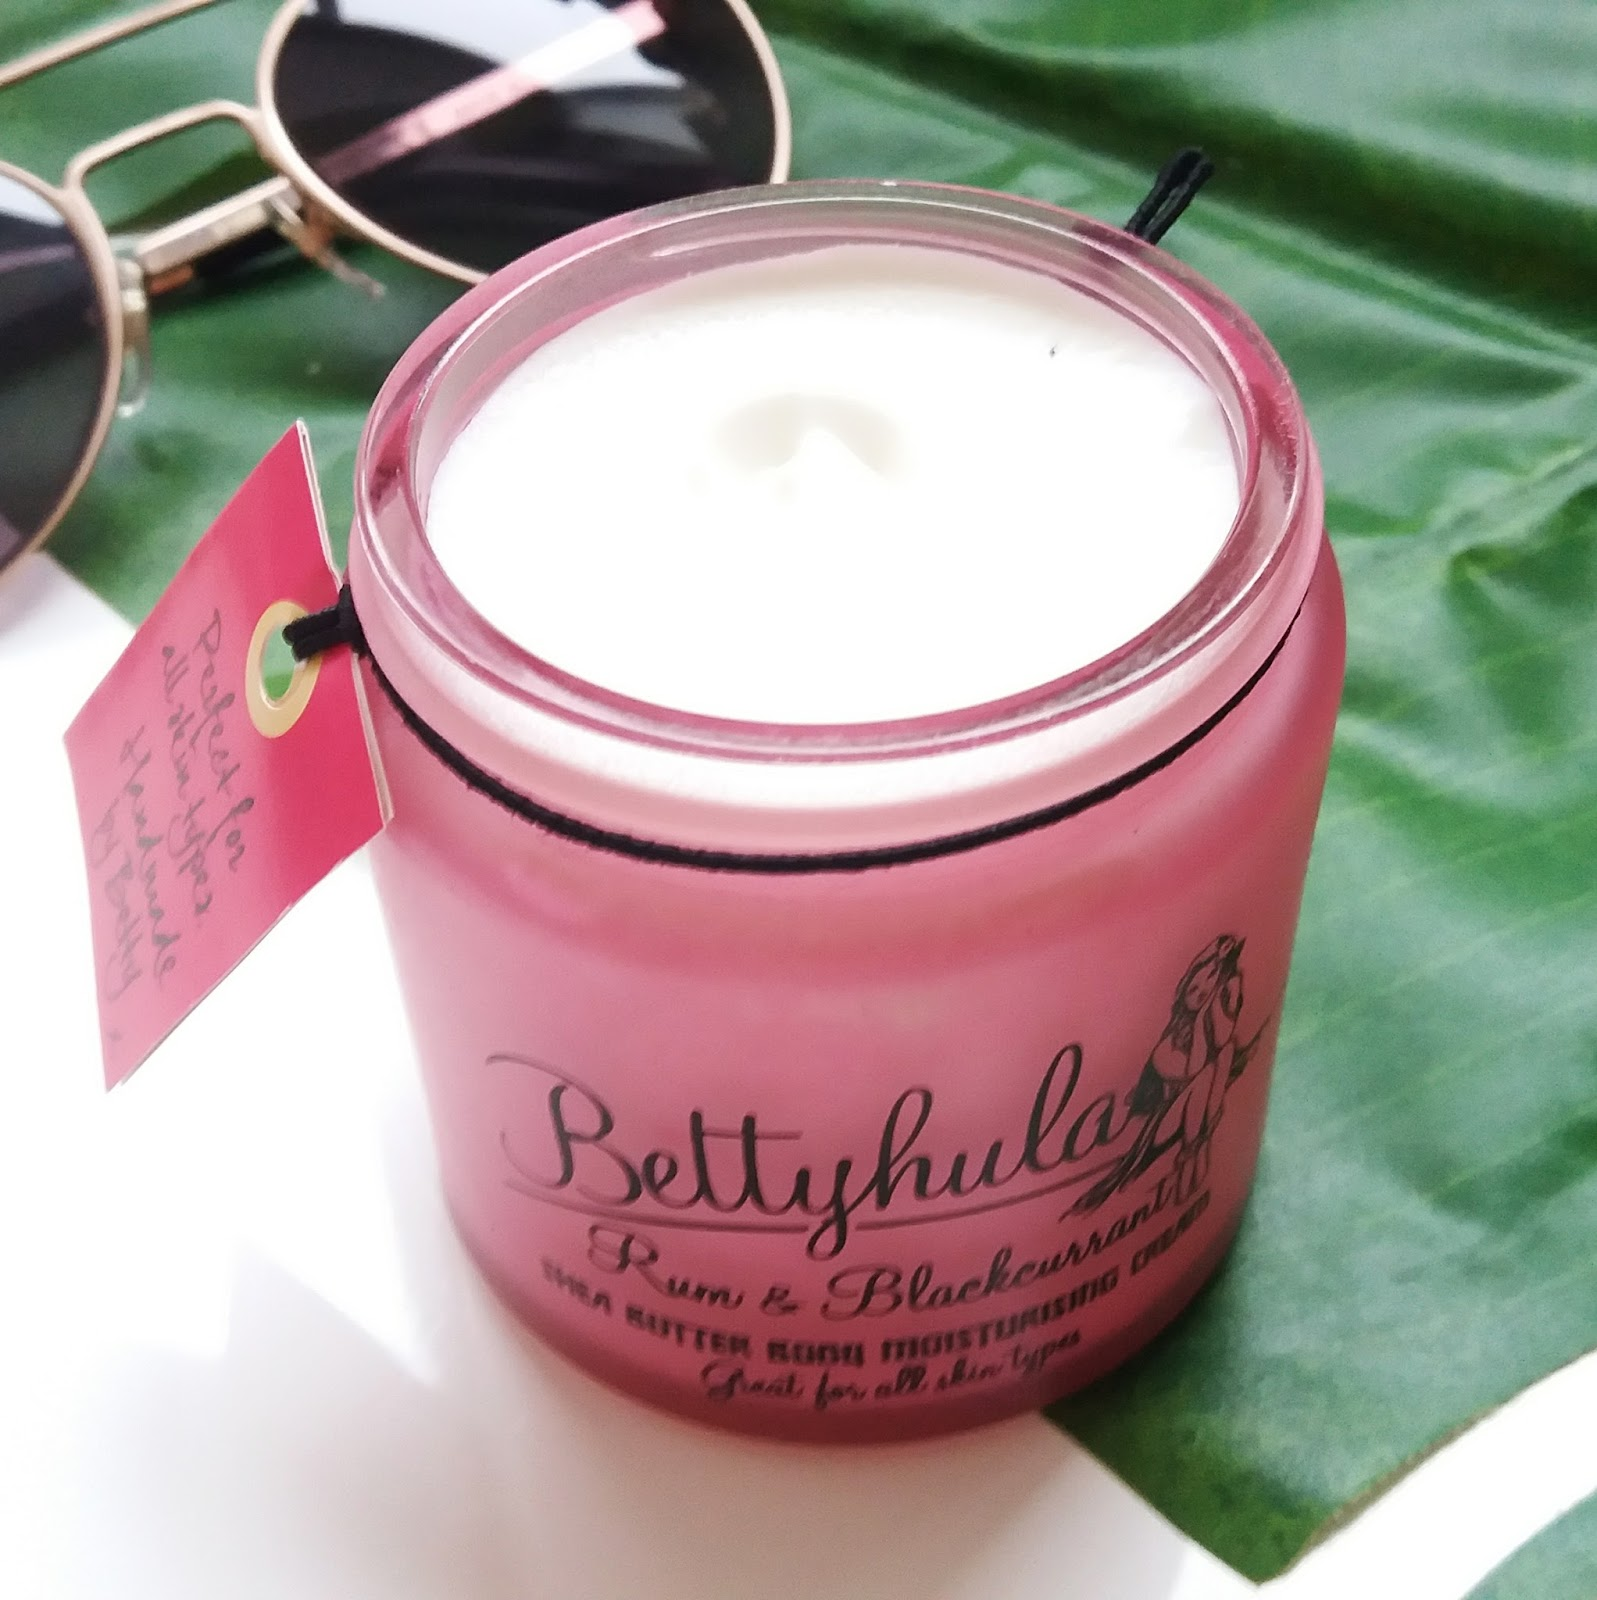 Betty Hula Body Moisturiser in Rum and Blackcurrant